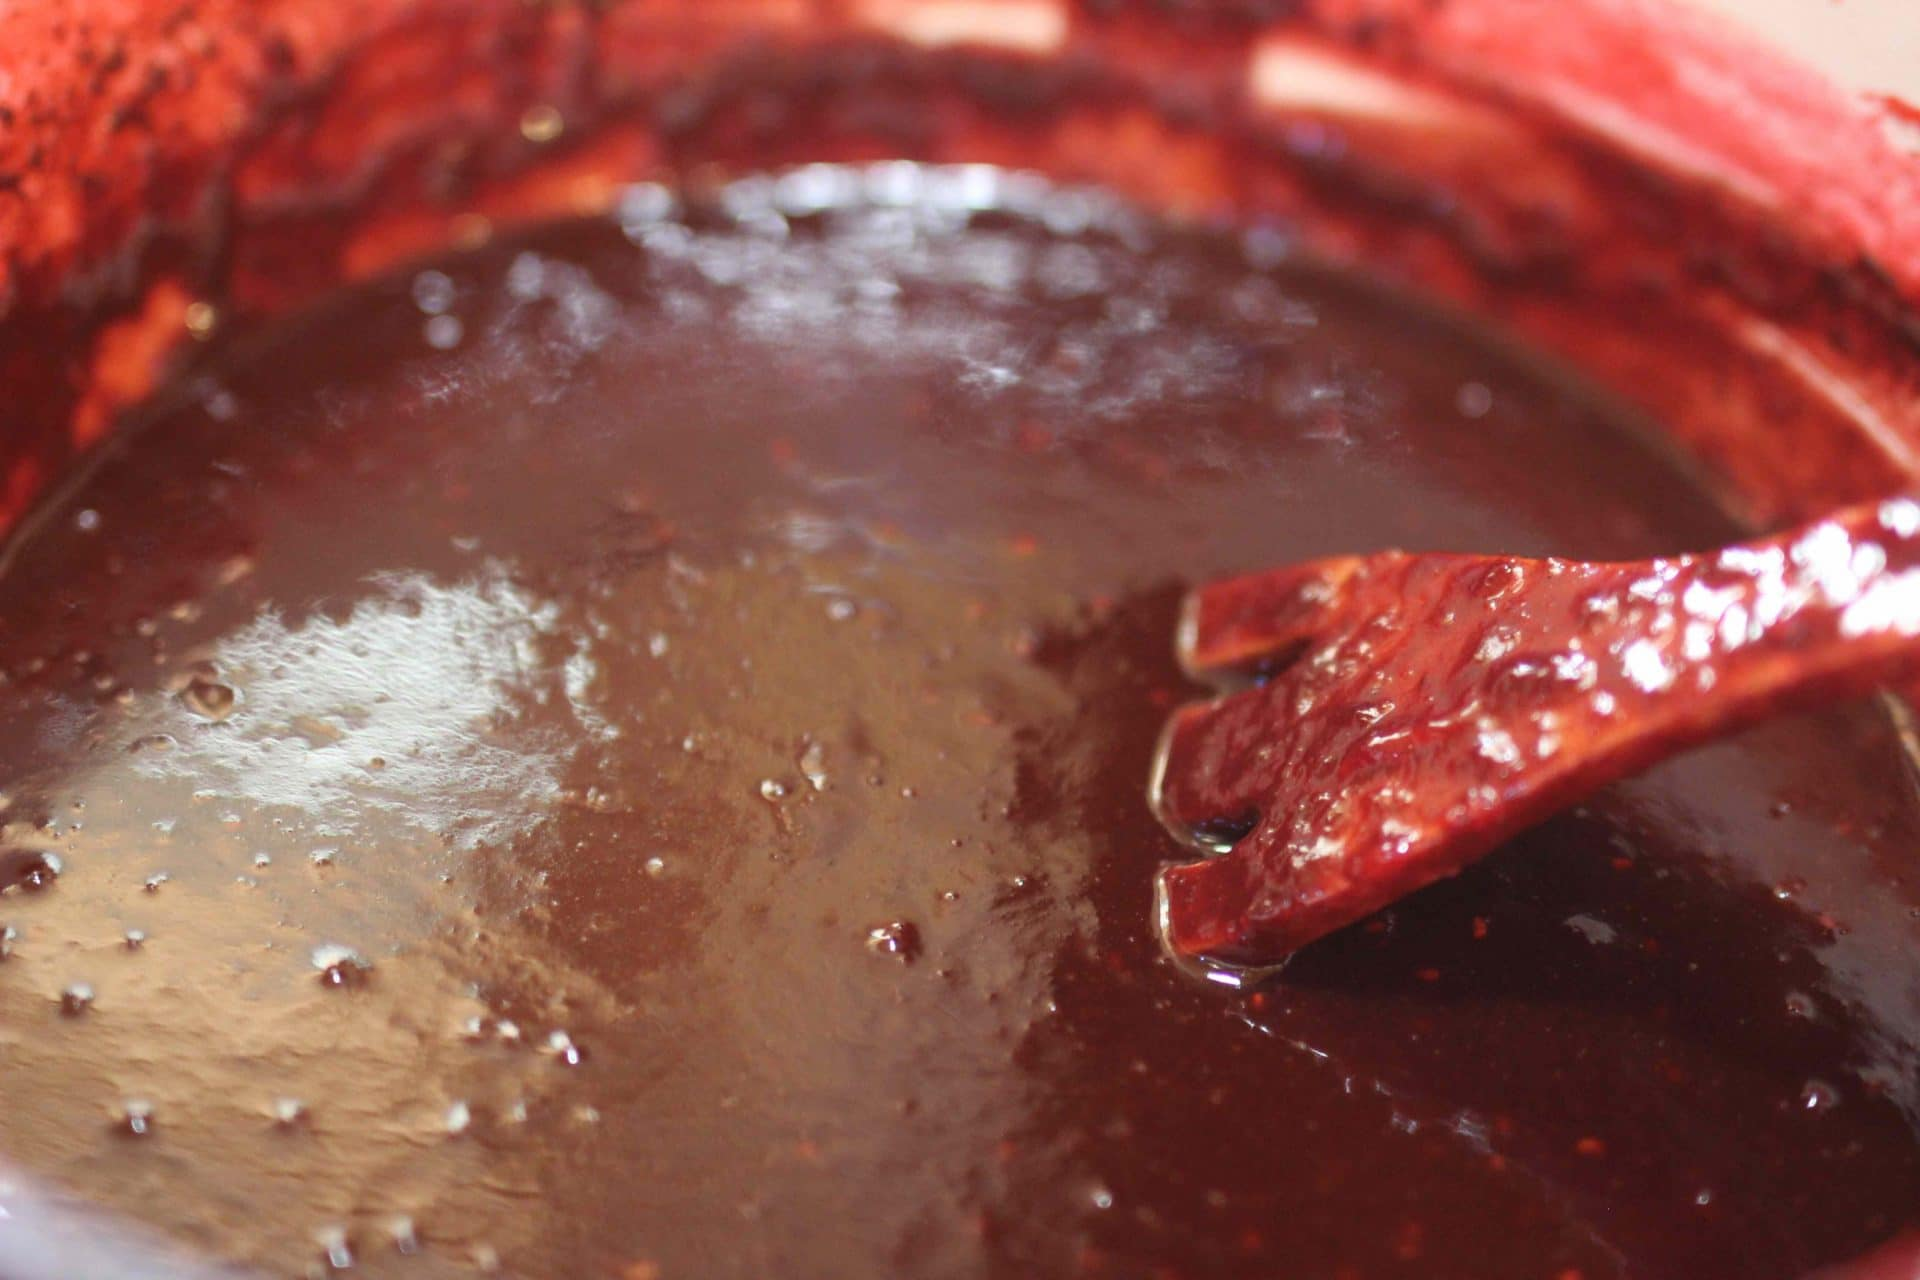 Chocolate Raspberry Jam (With Canning Instructions)